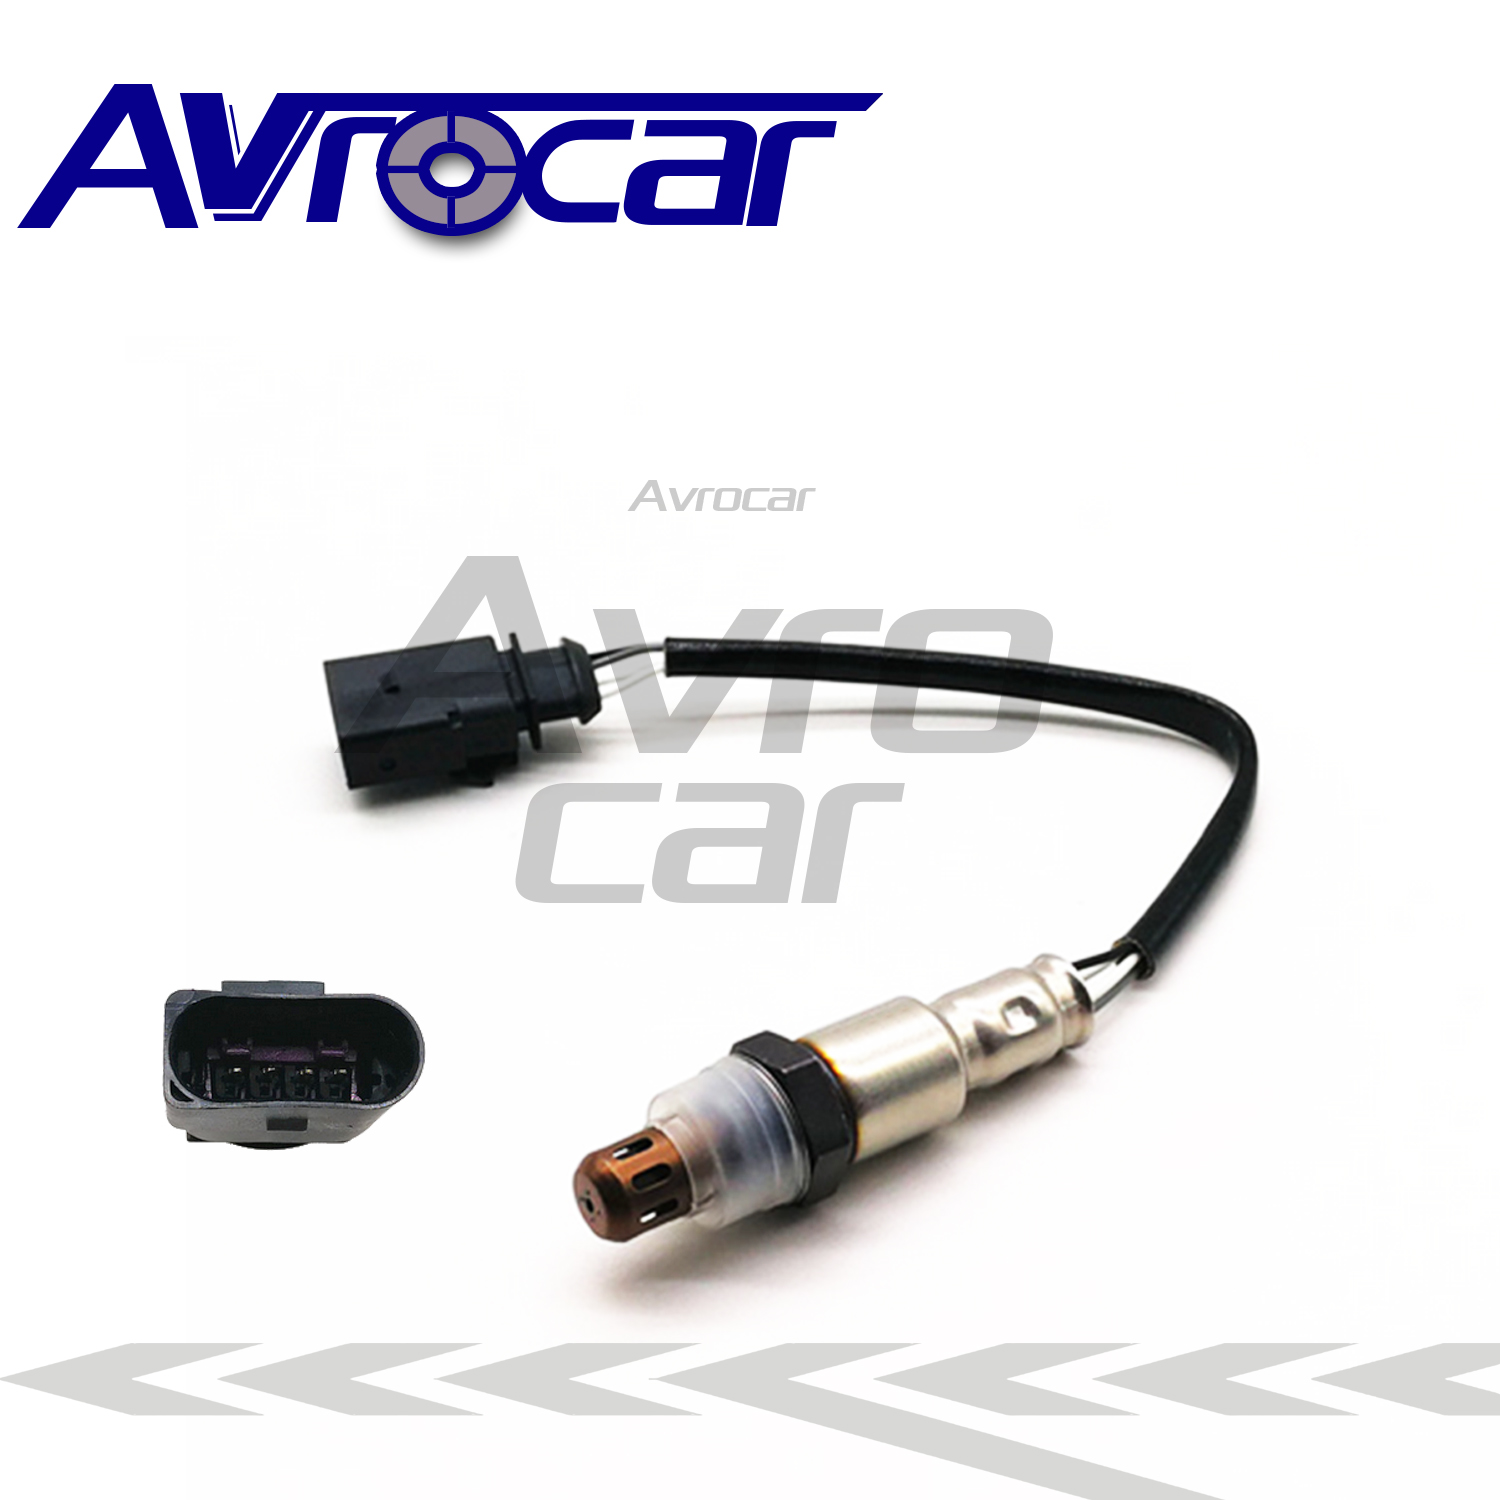 AVROCAR O2 Oxygen Sensor 03C906262AS Fit For VW LAVIDA NEW PASSAT TOURAN TIGUAN SKODA SUPERB OCTAVIA 1.4T DOWNSTREAM REAR Lambda